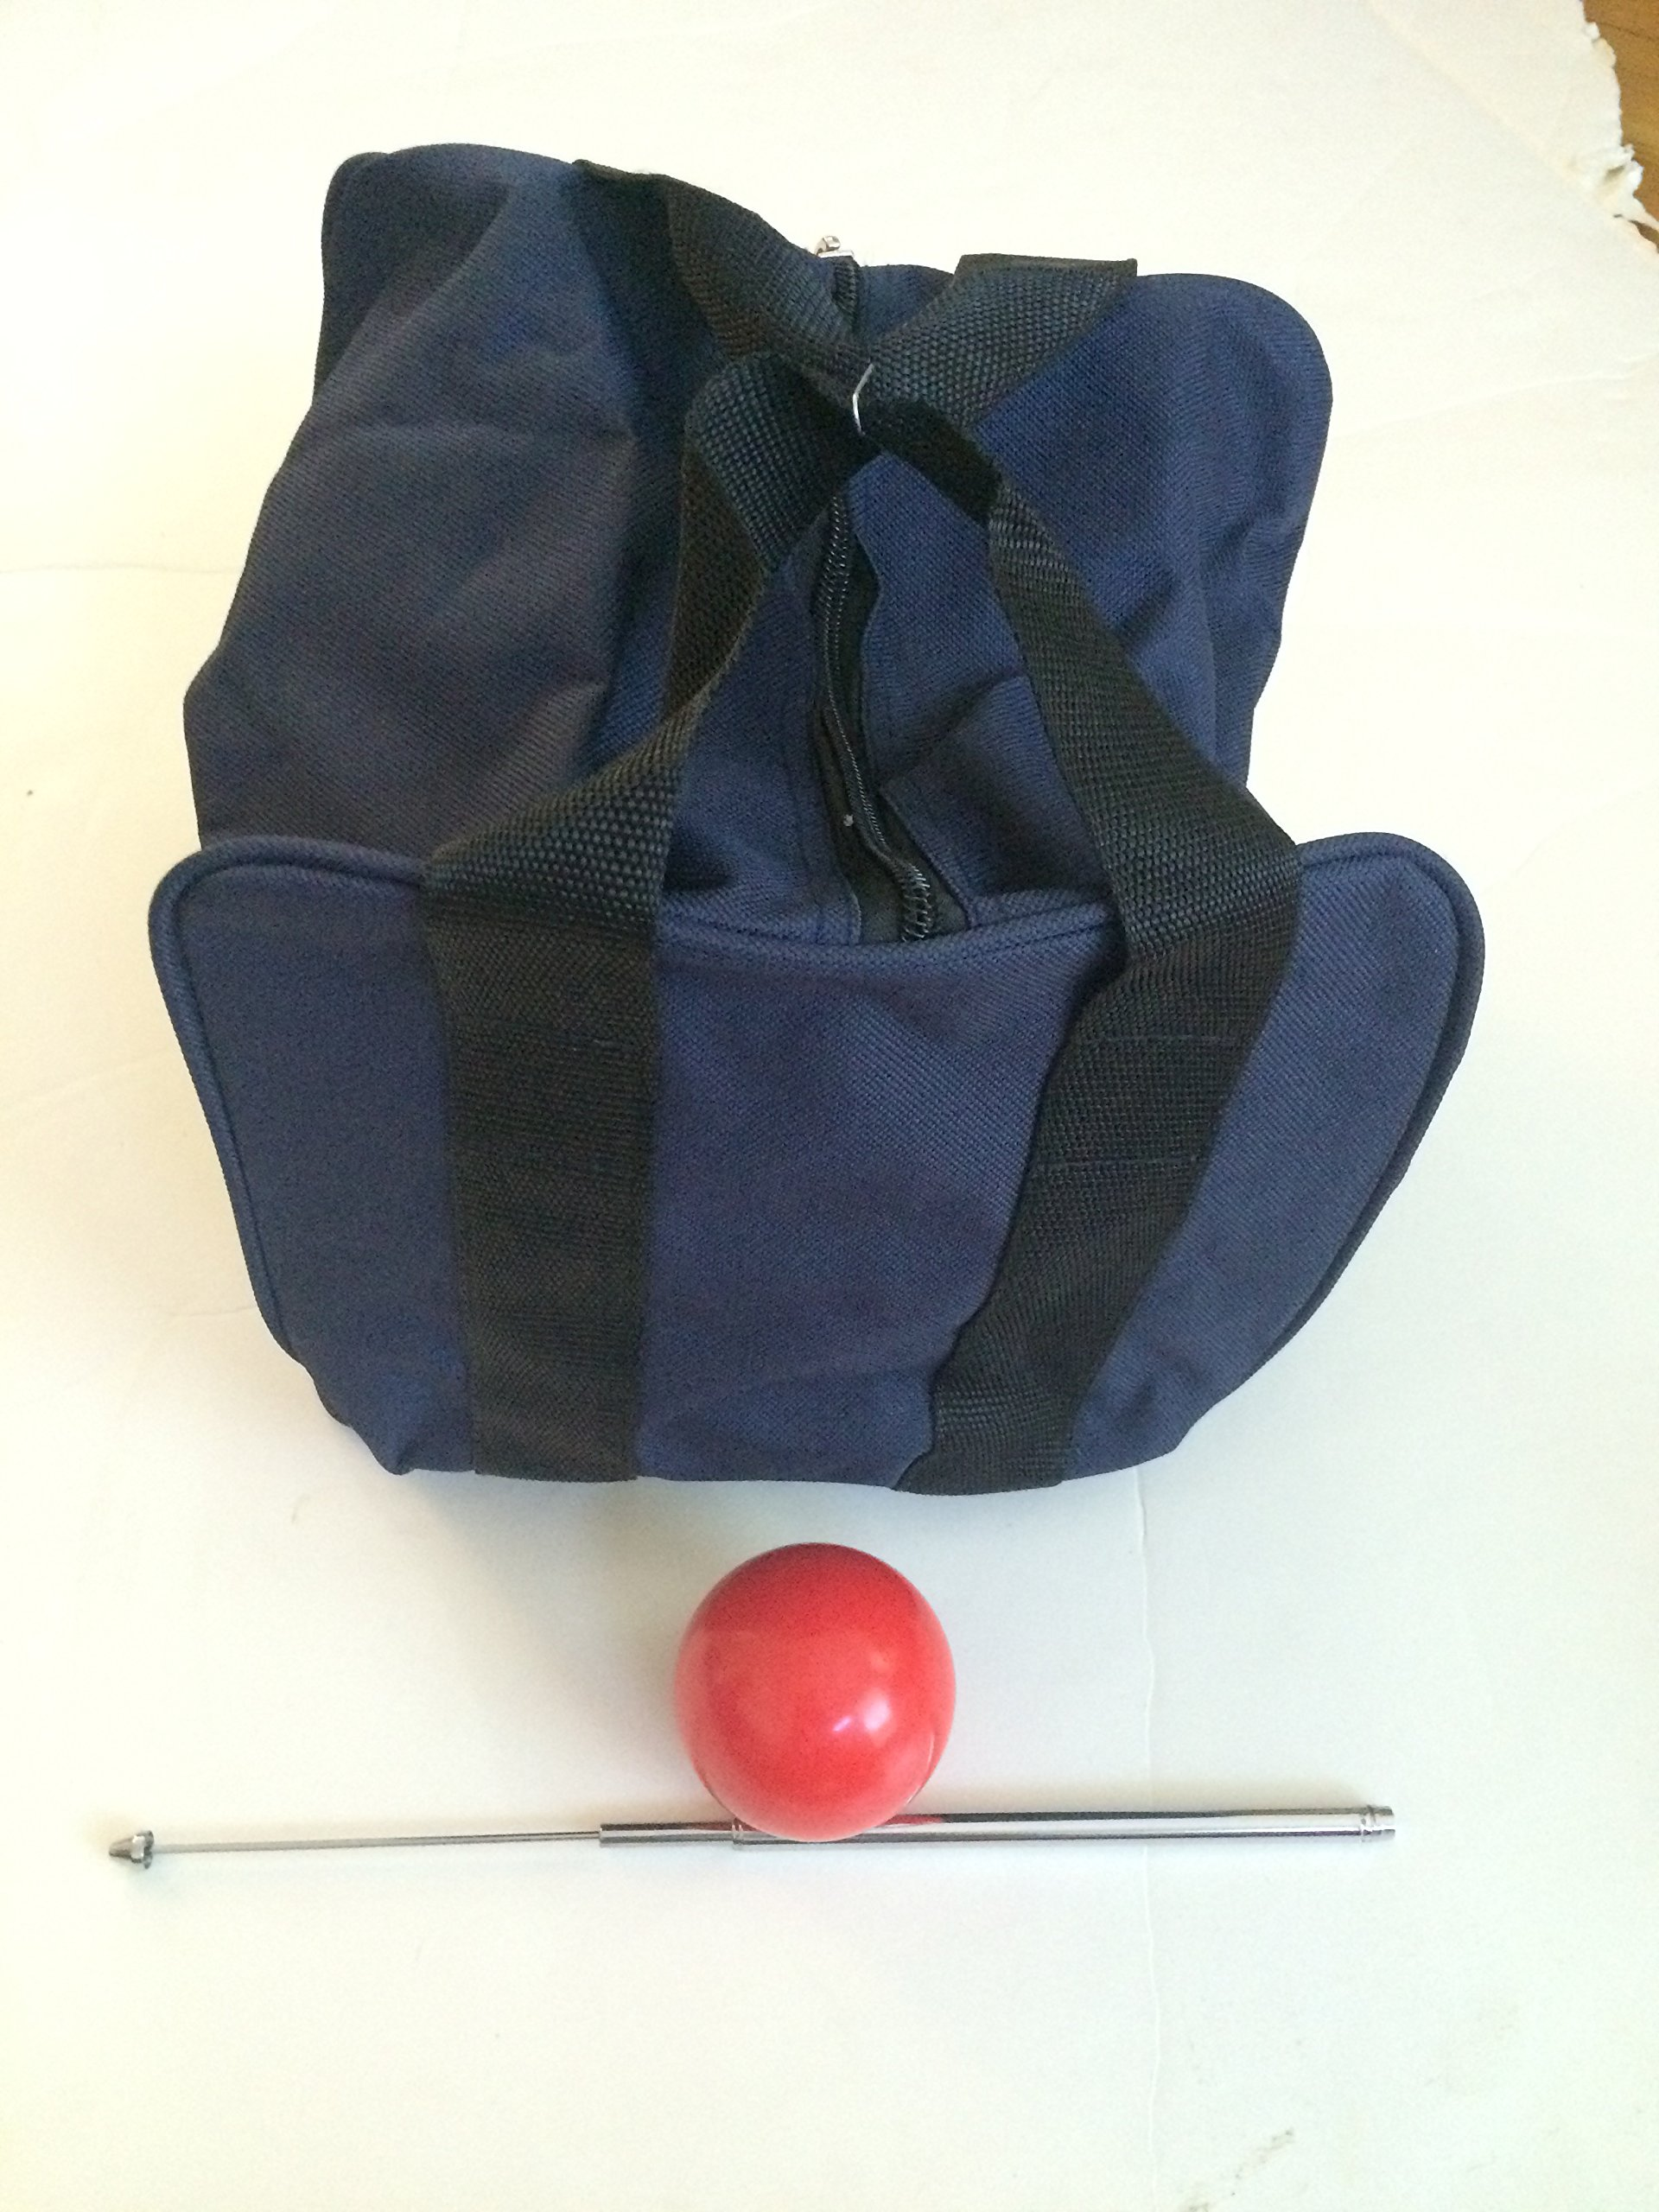 Unique Bocce Accessories Package - Extra Heavy Duty Nylon Bocce Bag (Blue with Black Handles), red pallina, Extendable Measuring Device by BuyBocceBalls